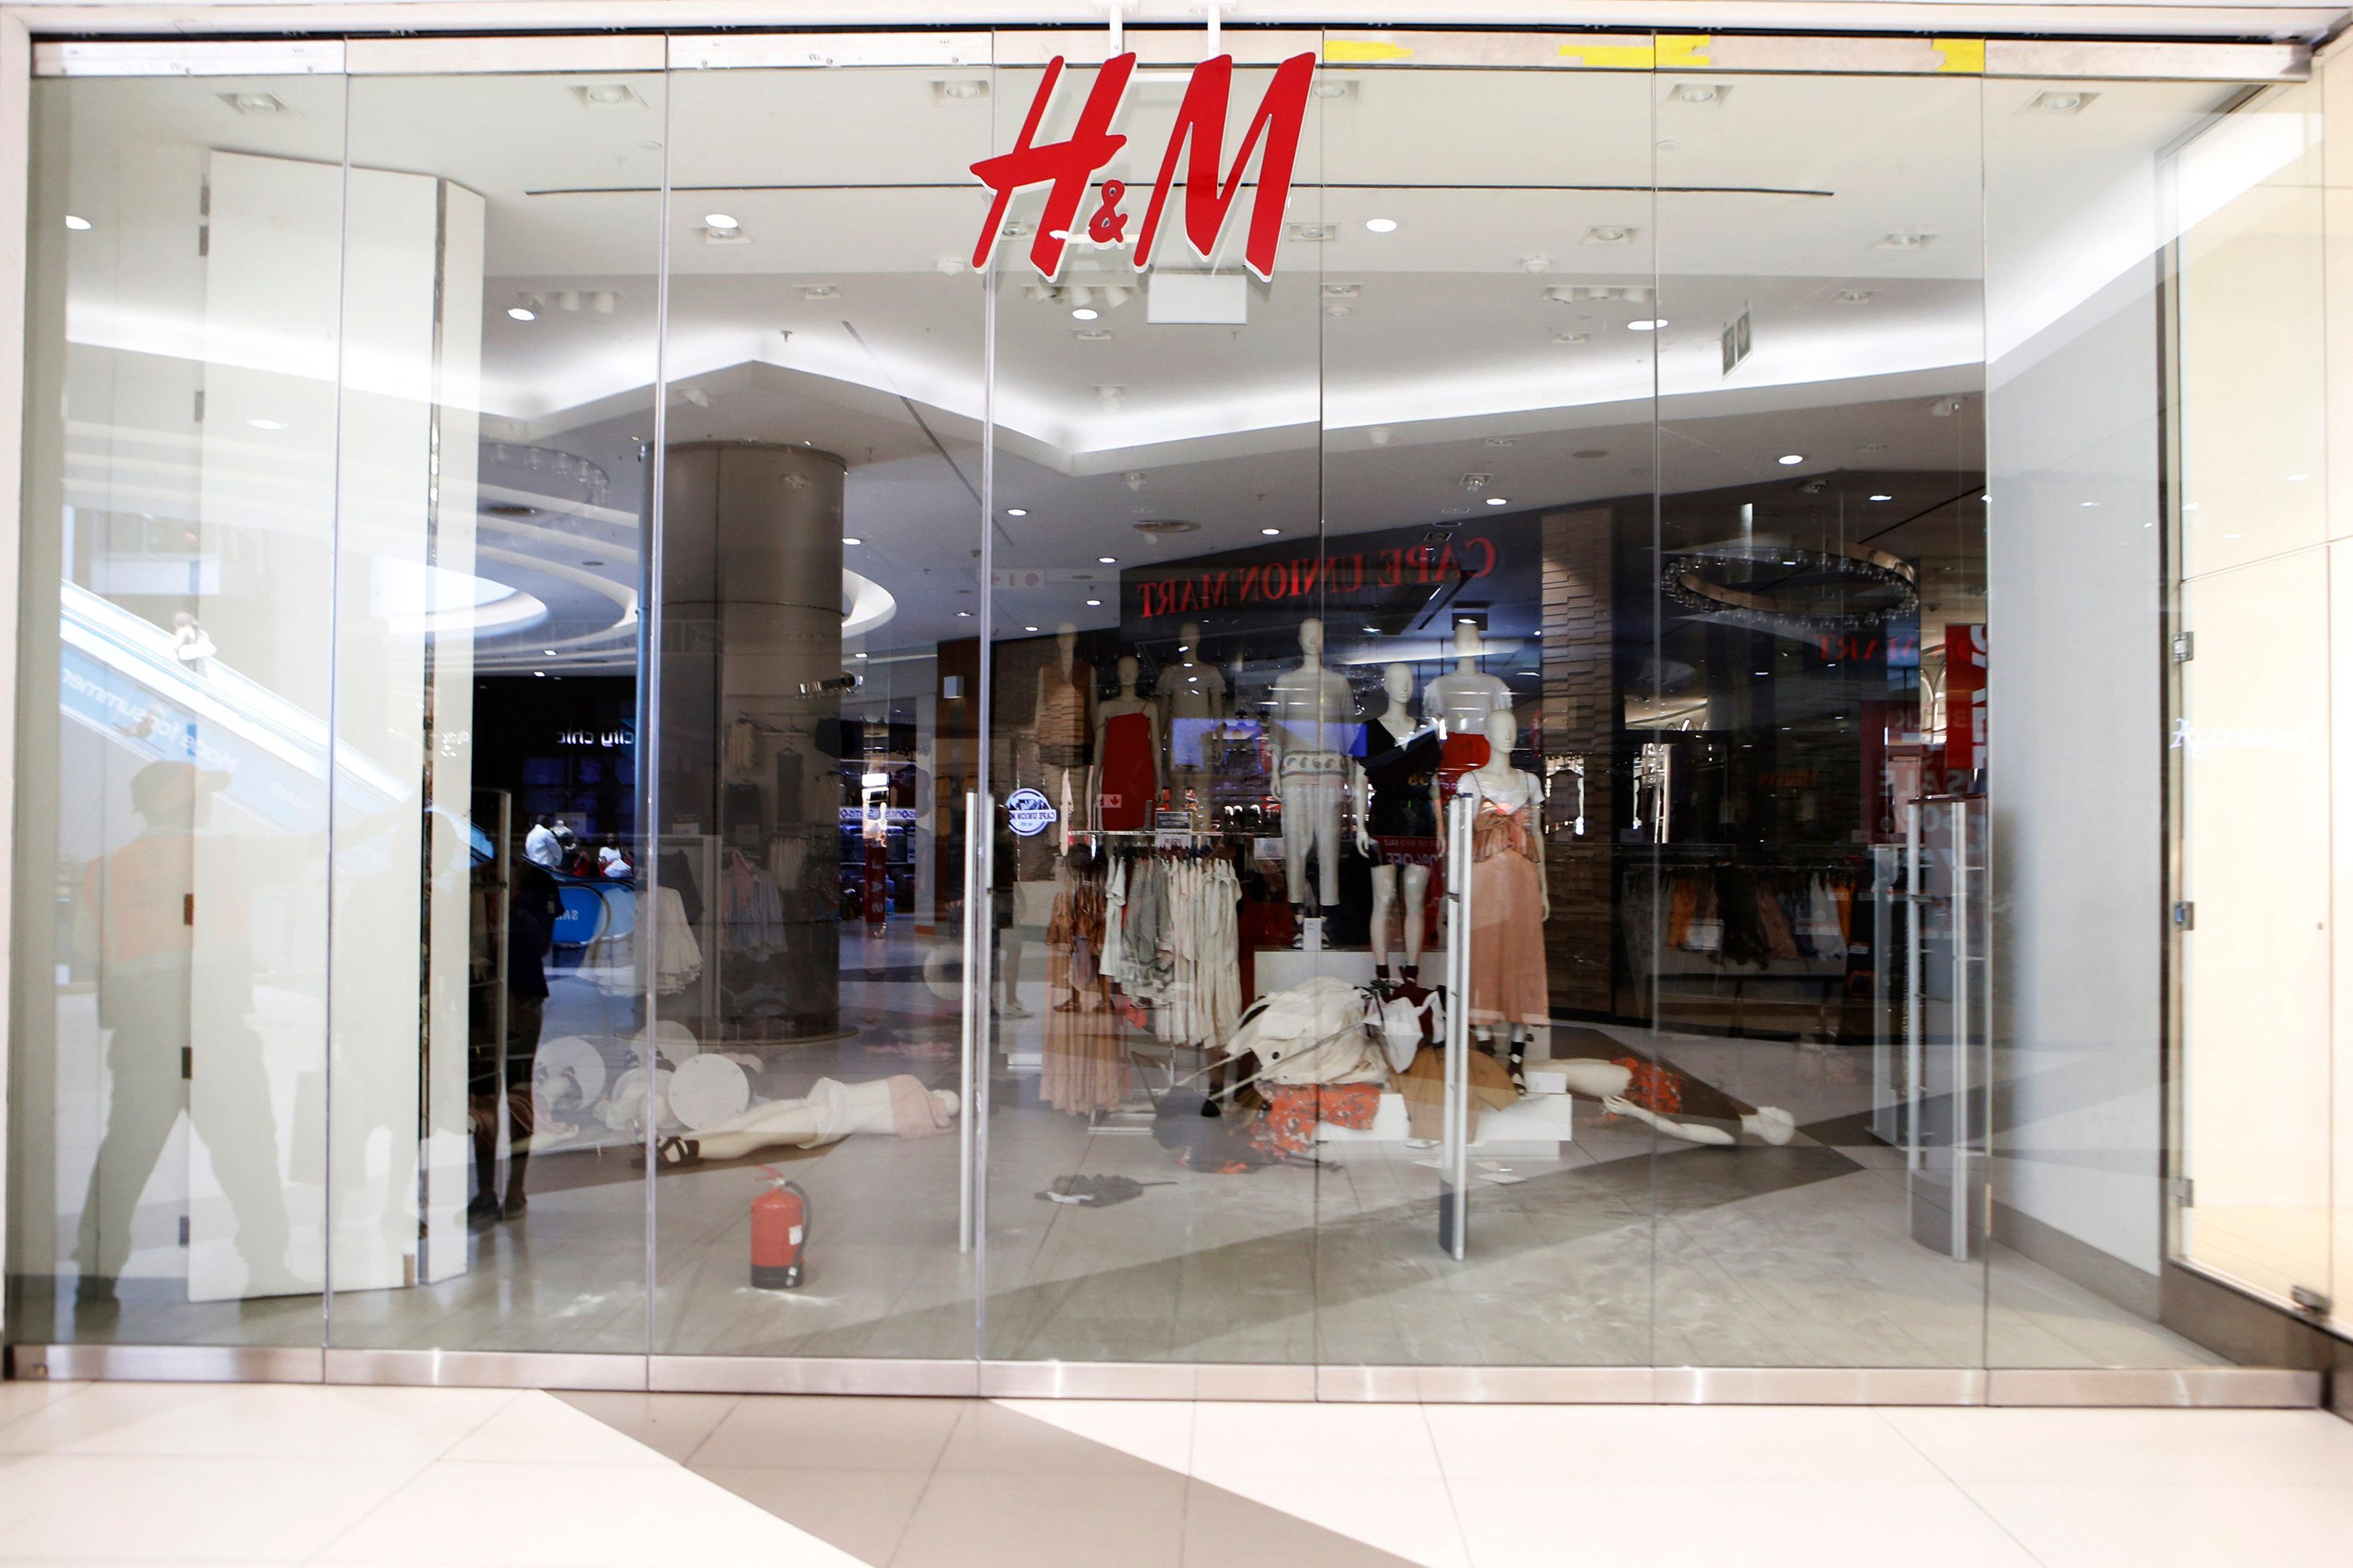 Protesters trash H&M store as race row over 'coolest monkey in the jungle' featuring black child model continues to